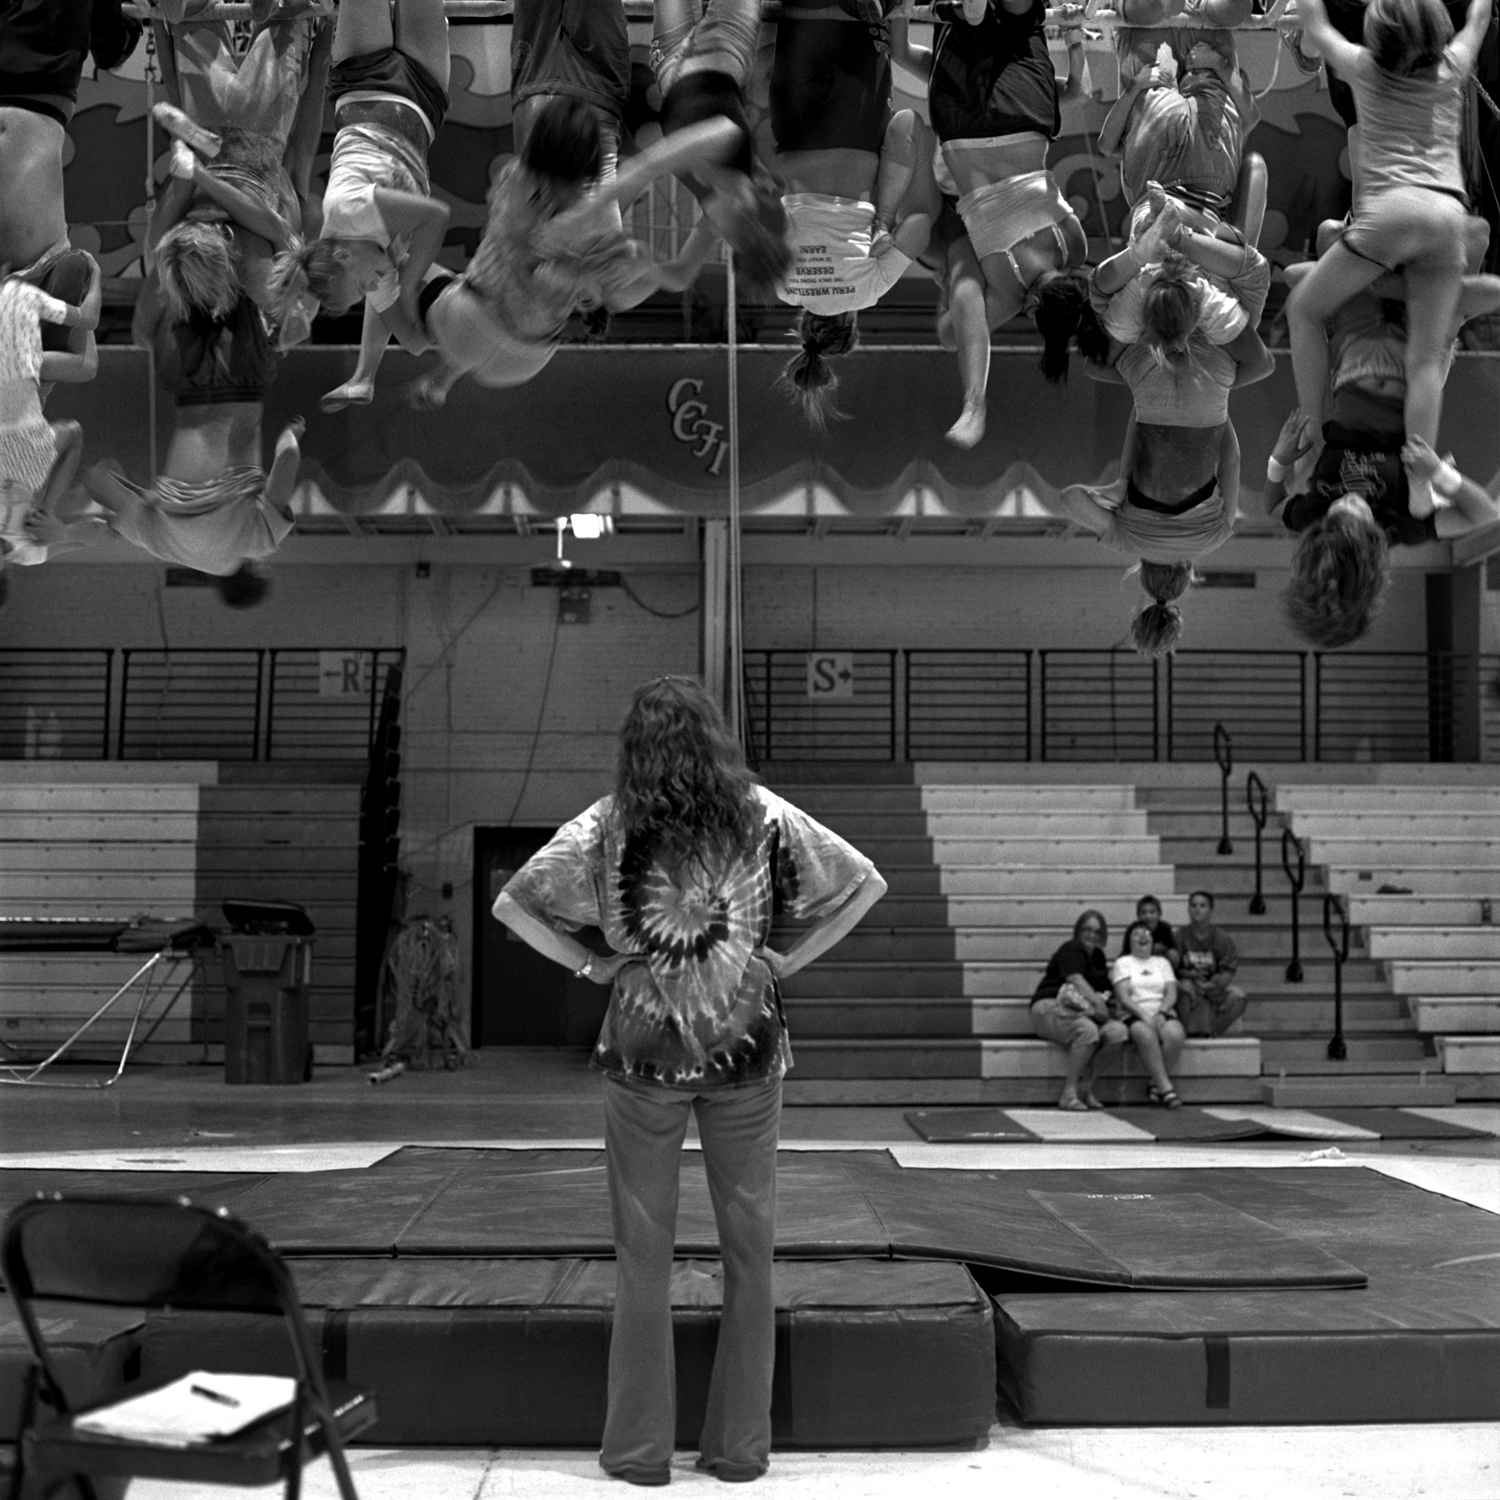 Lori Smith, a trainer for the Double 4 Lane act,  watches as laughing and giggling kids climb, using each other as ladders to get to the top. Parents of child performers often sit in the stands and watch the practice.